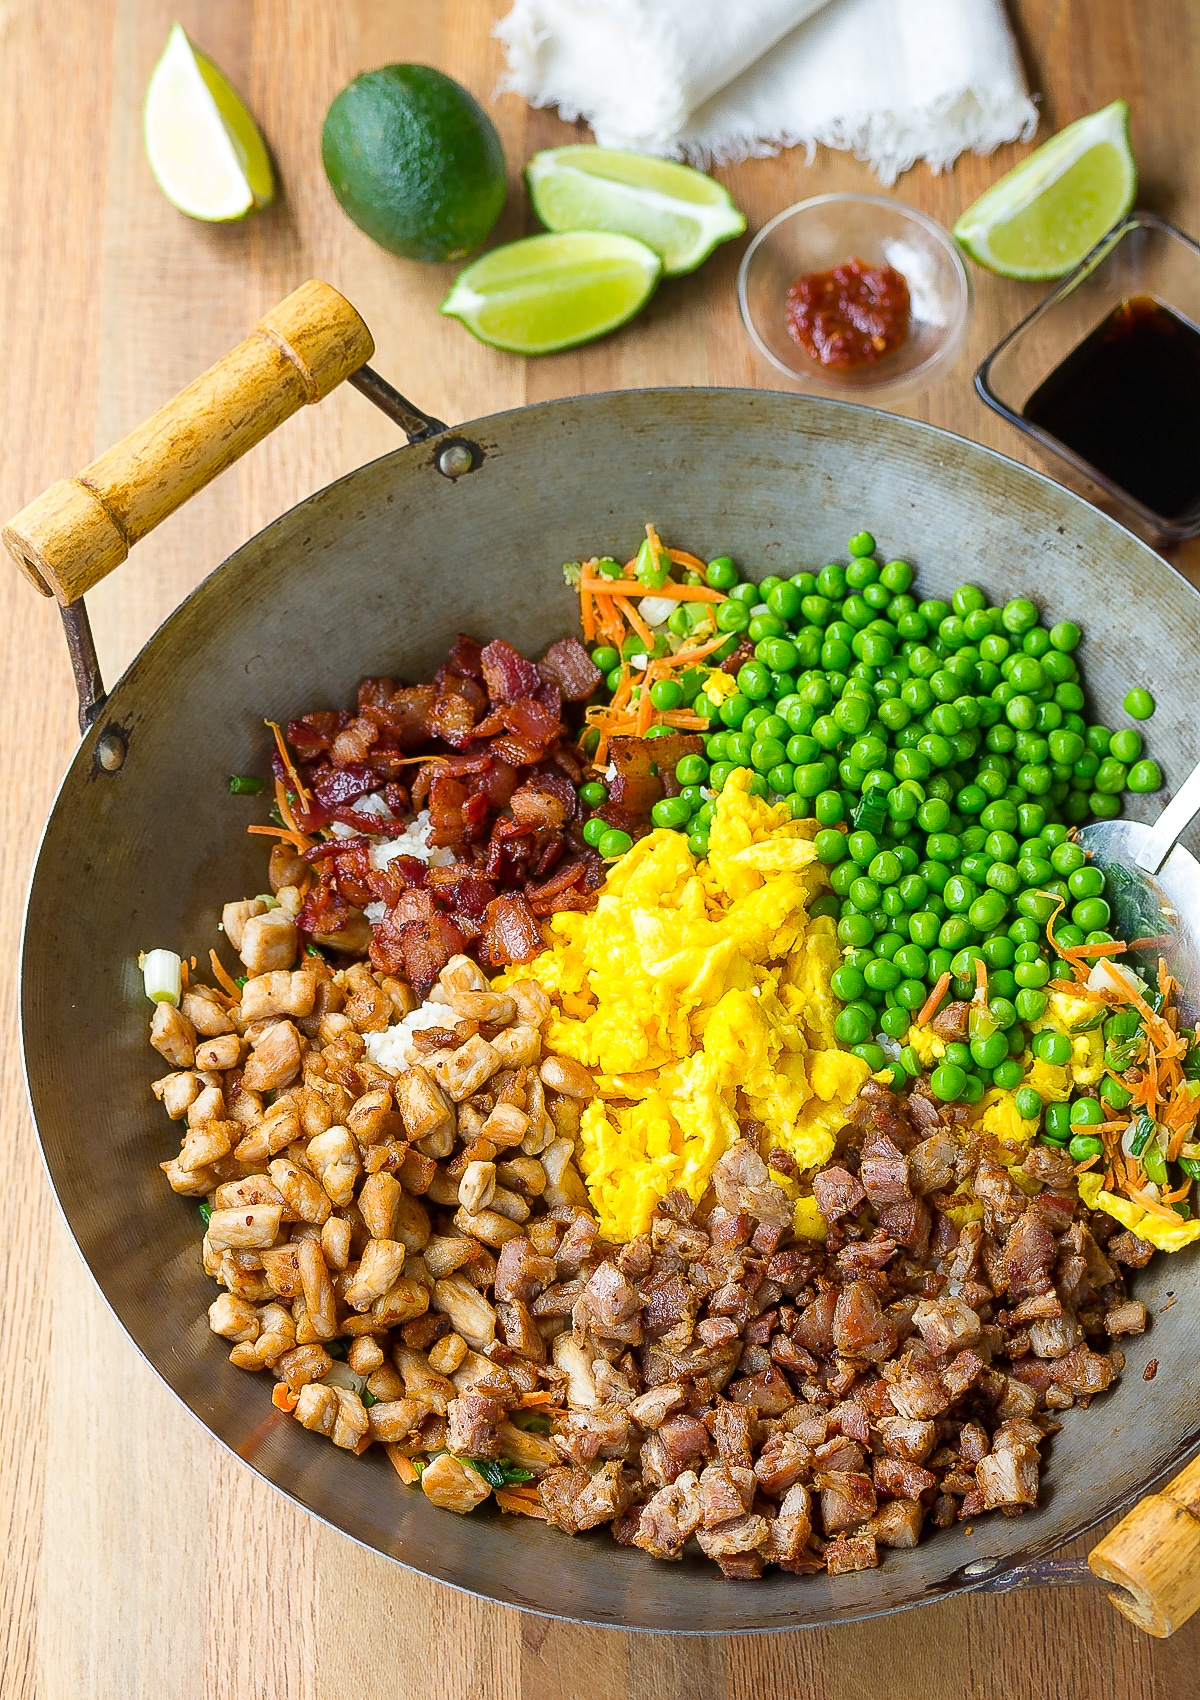 Pork Stir Fry Rice Recipe #ASpicyPerspective #rice #fried #pork #bacon #asian #hawaiian